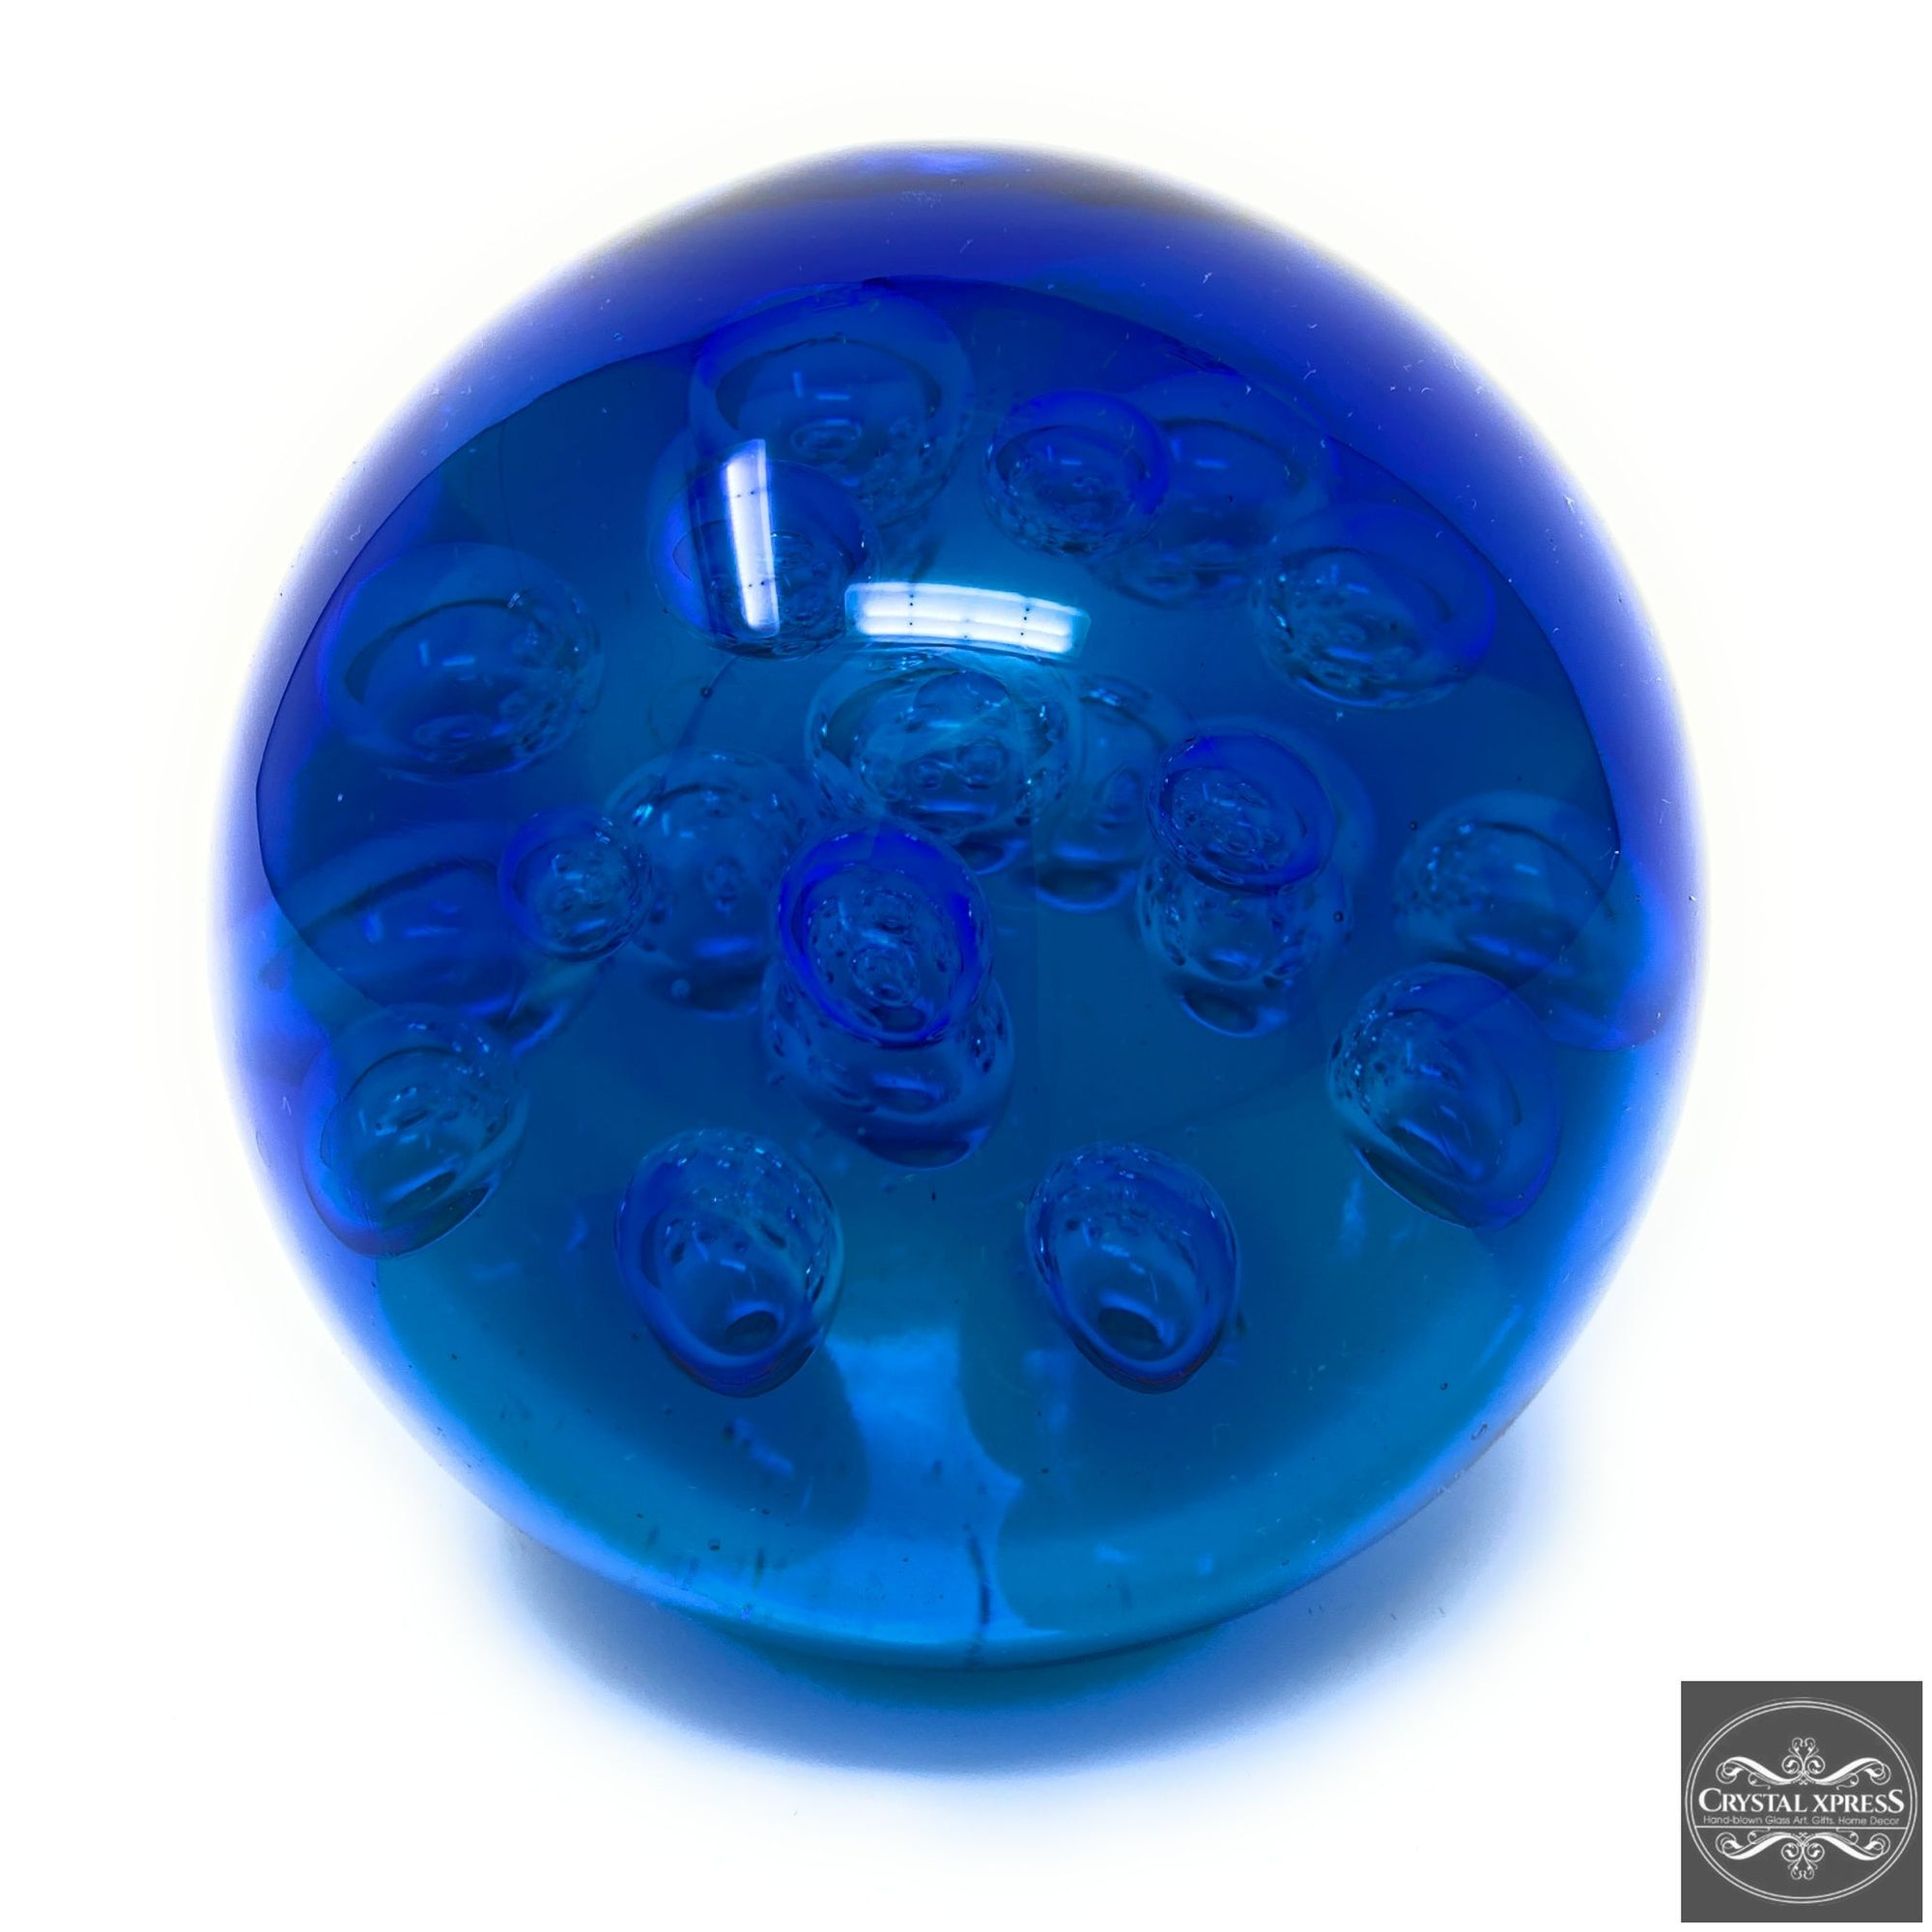 Blue Glass Ball Paperweight 7 inch DiameterCrystal Xpress